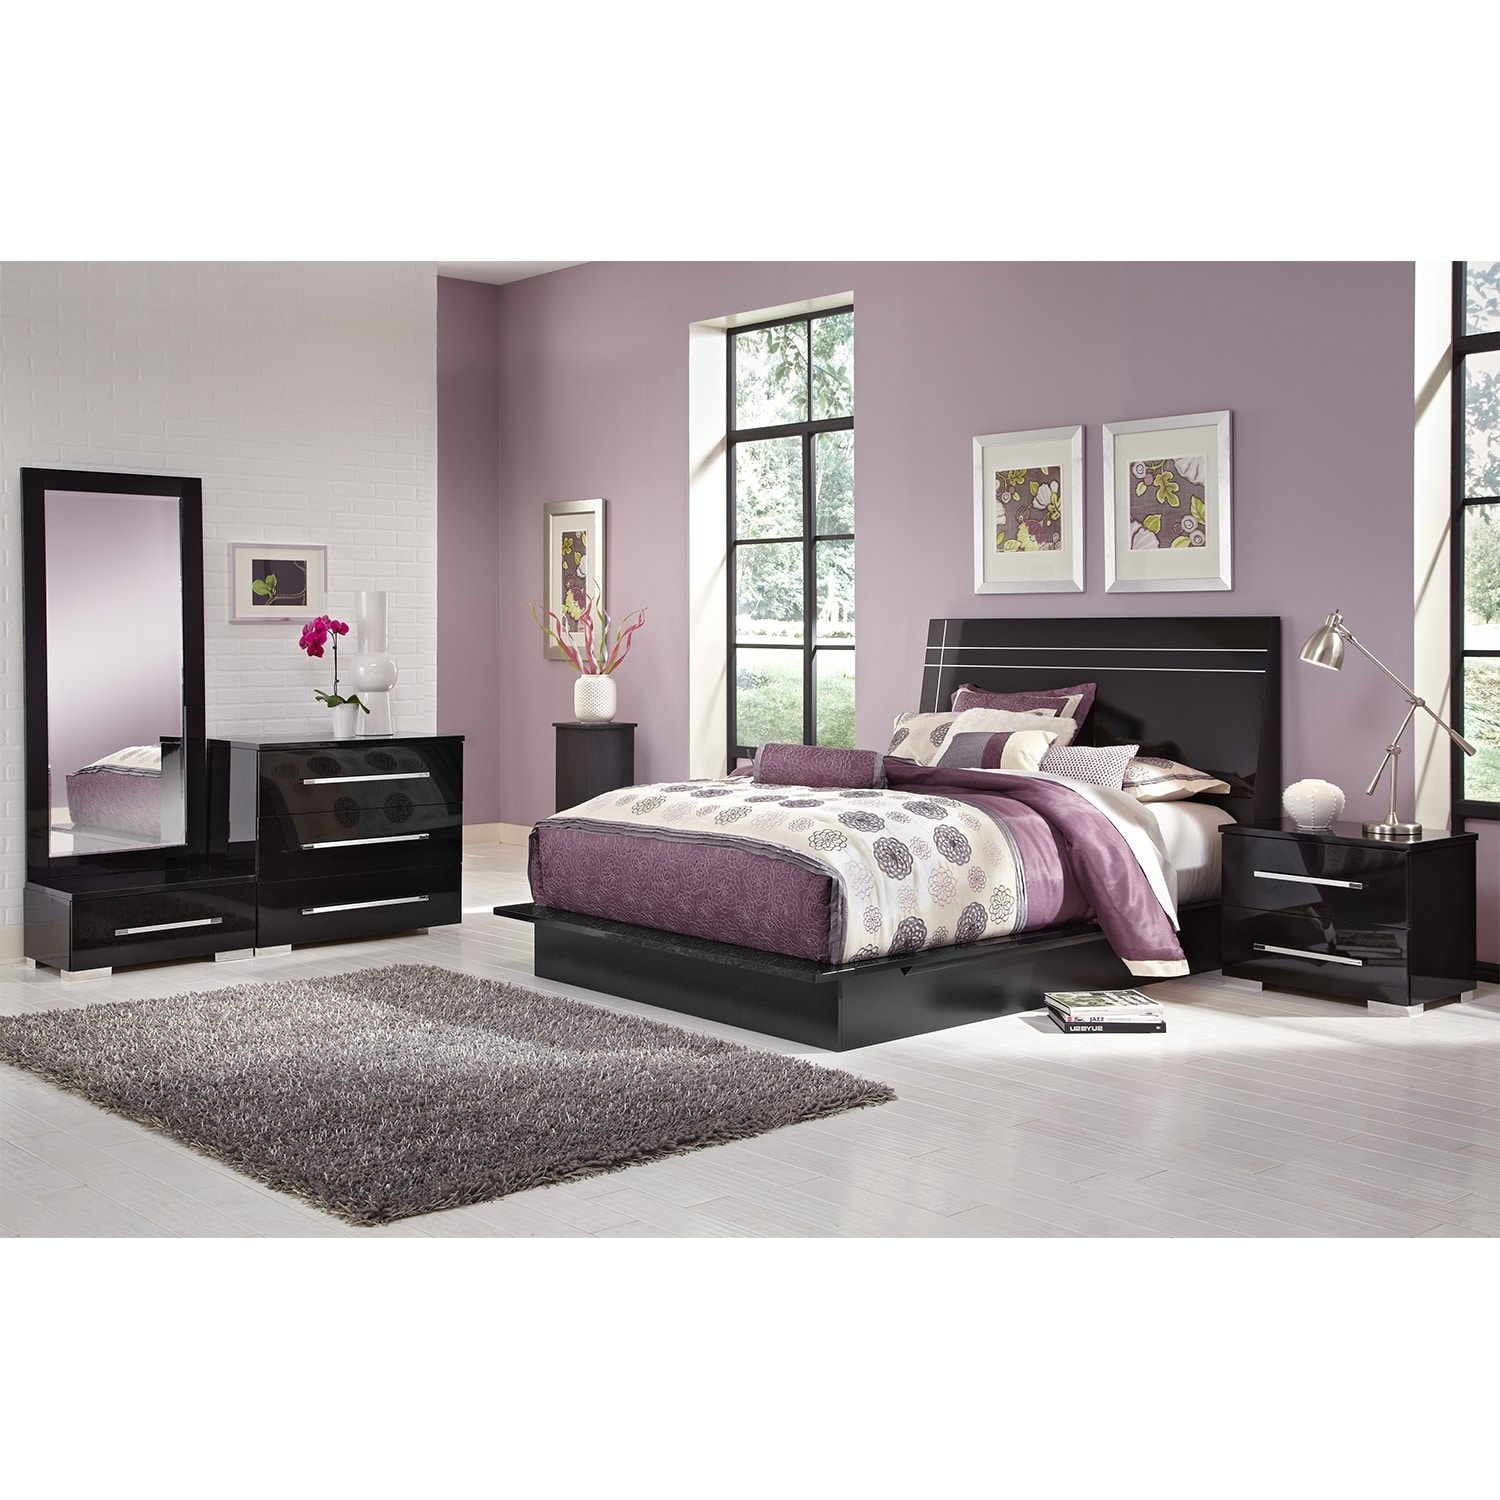 Dimora 6 piece queen panel bedroom set black american - Black queen bedroom furniture set ...